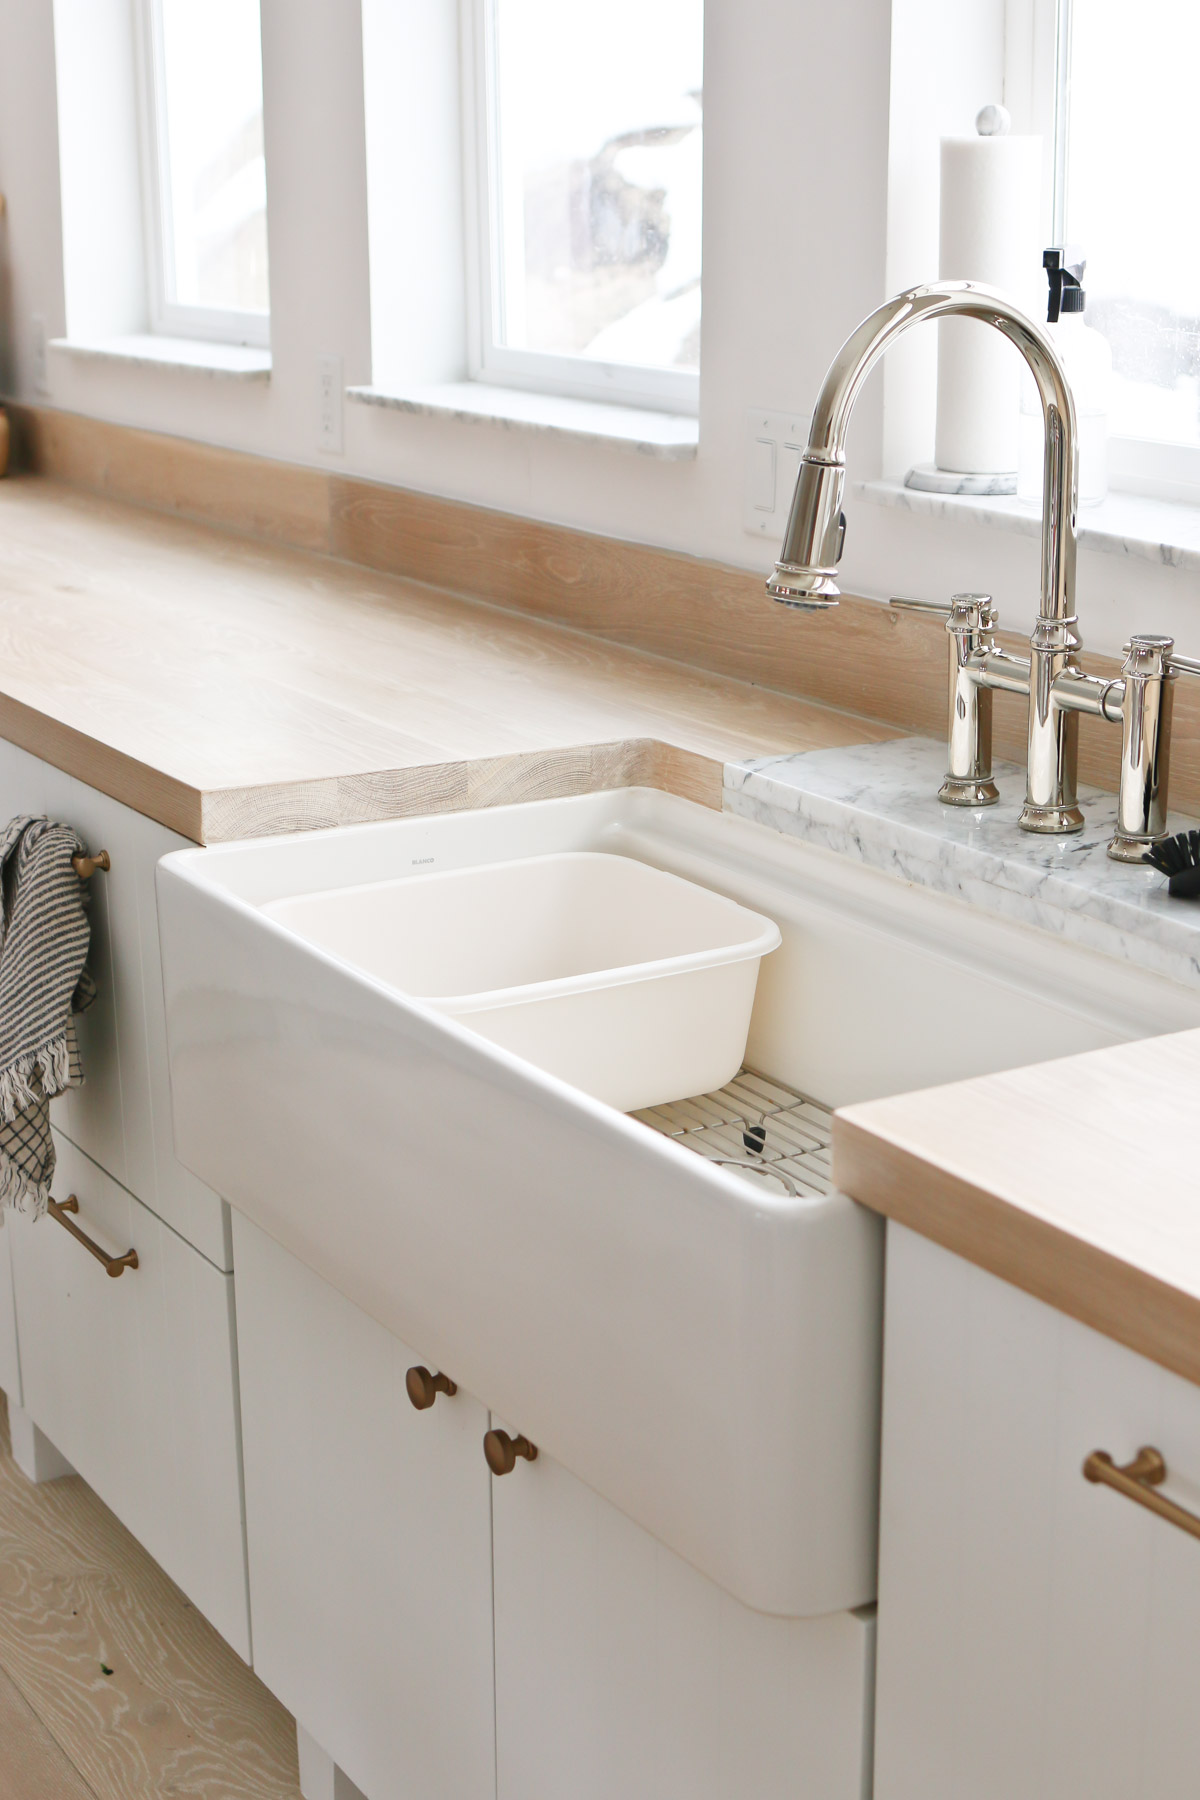 My Best Tips For Cleaning A Fireclay Sink Tidbits